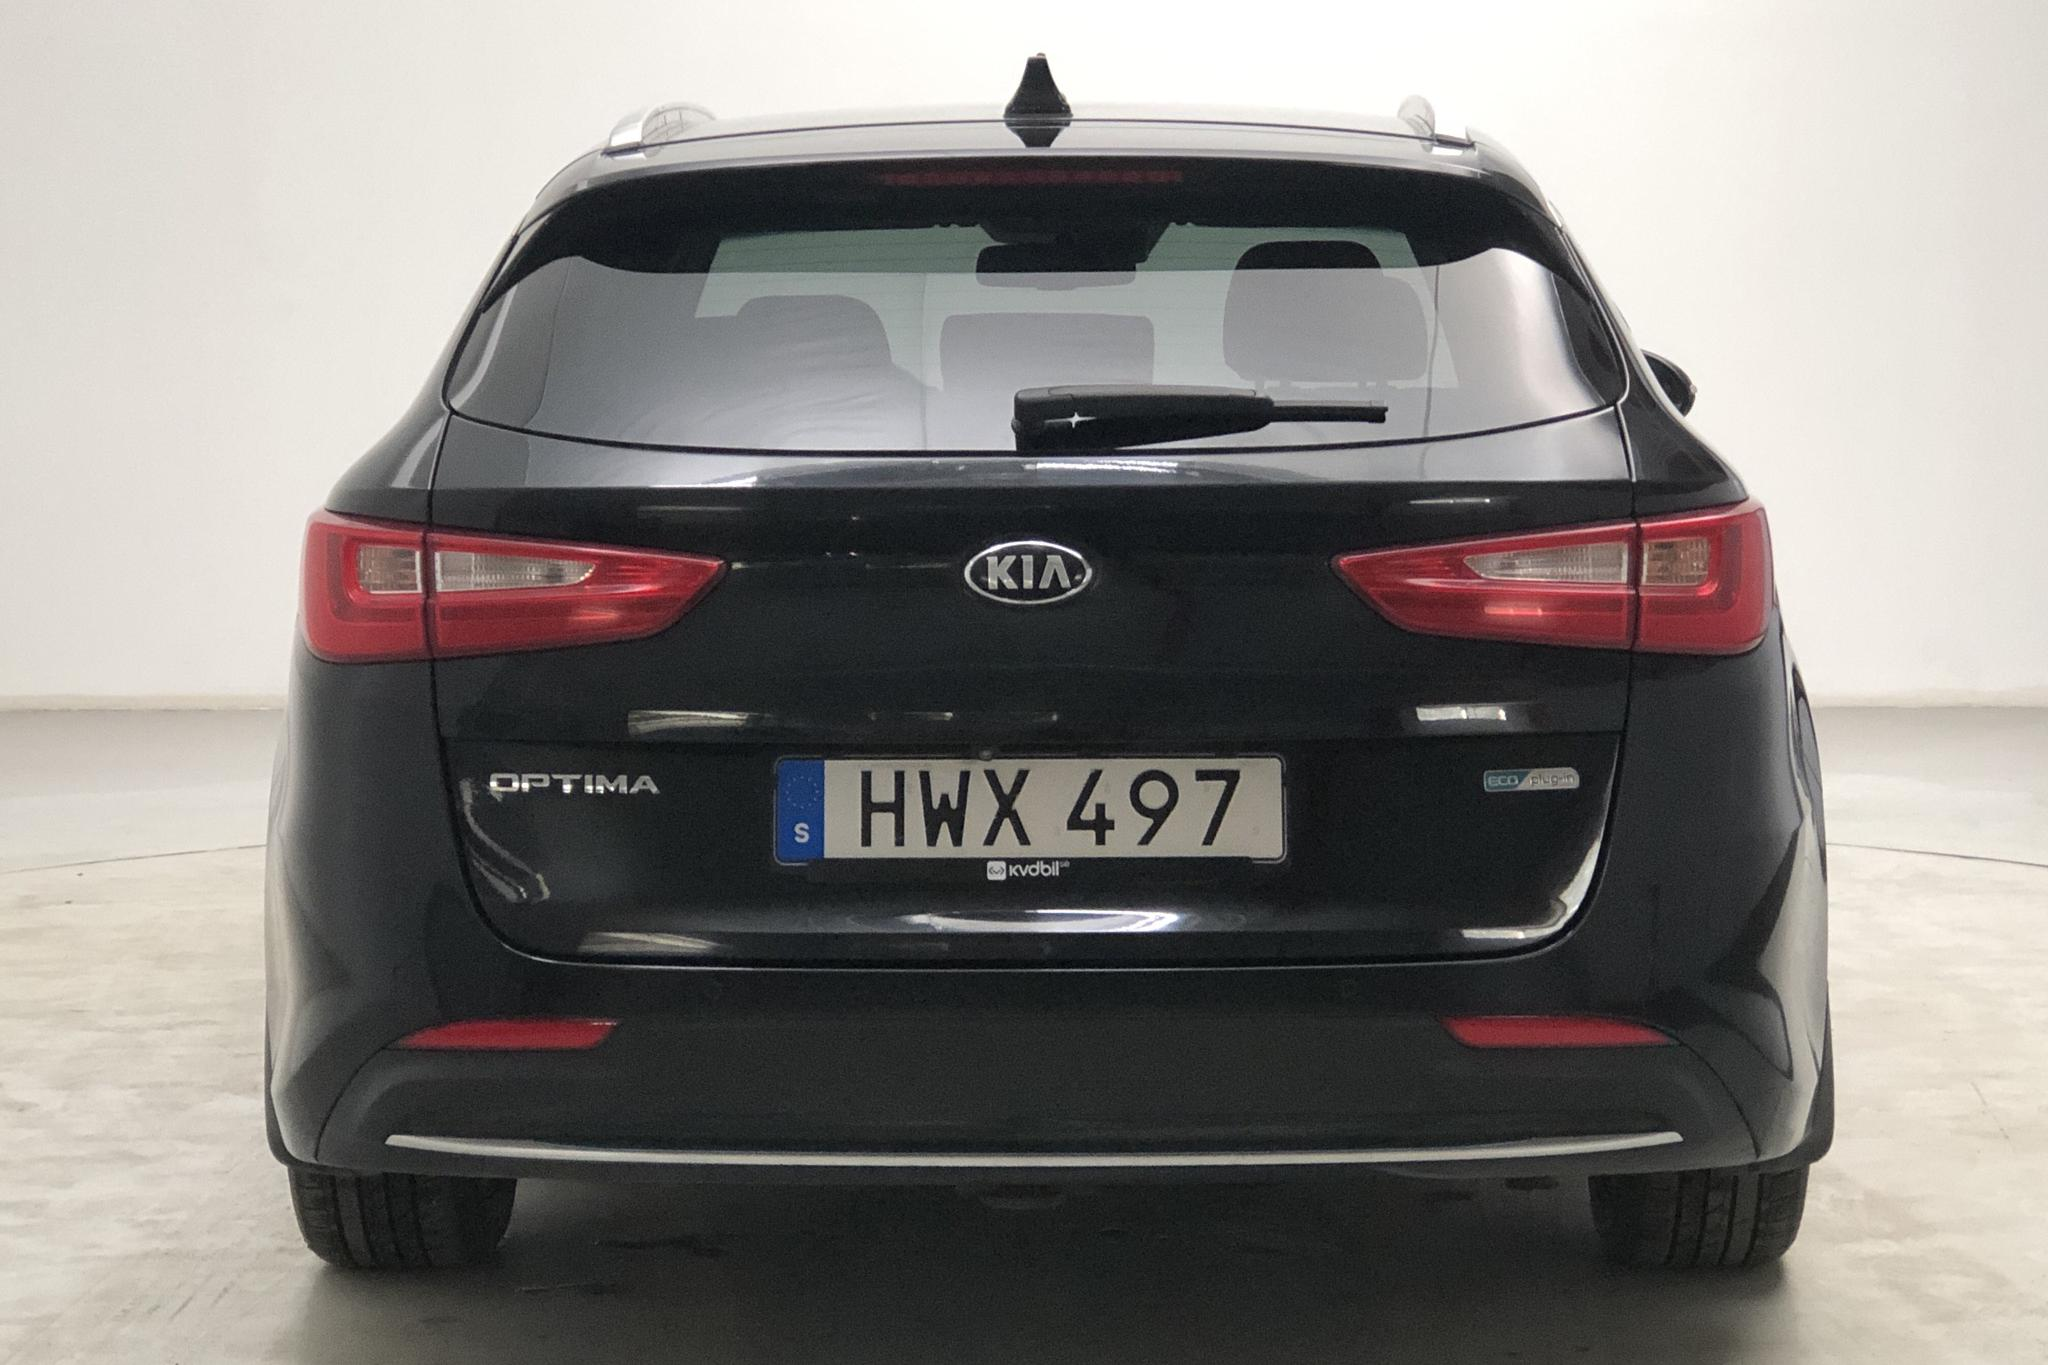 KIA Optima 2.0 GDi Plug-in Hybrid SW (205hk) - 164 500 km - Automatic - black - 2018